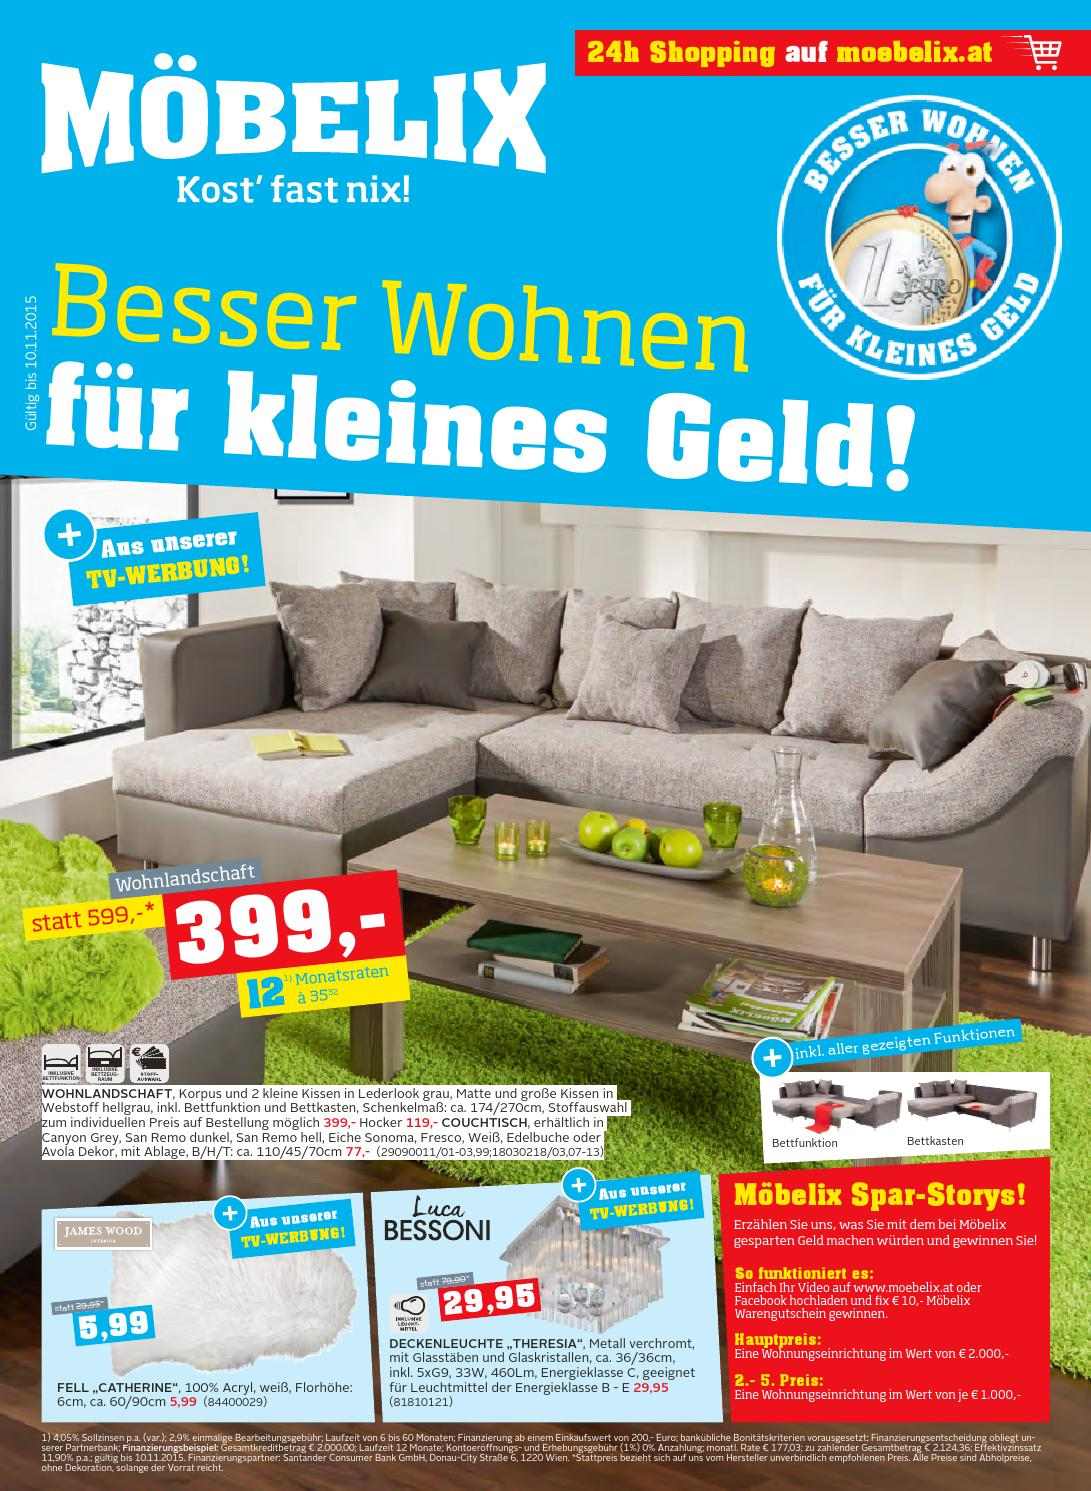 Moebelix Angebote 2 10november2015 By Promoangebote At Issuu